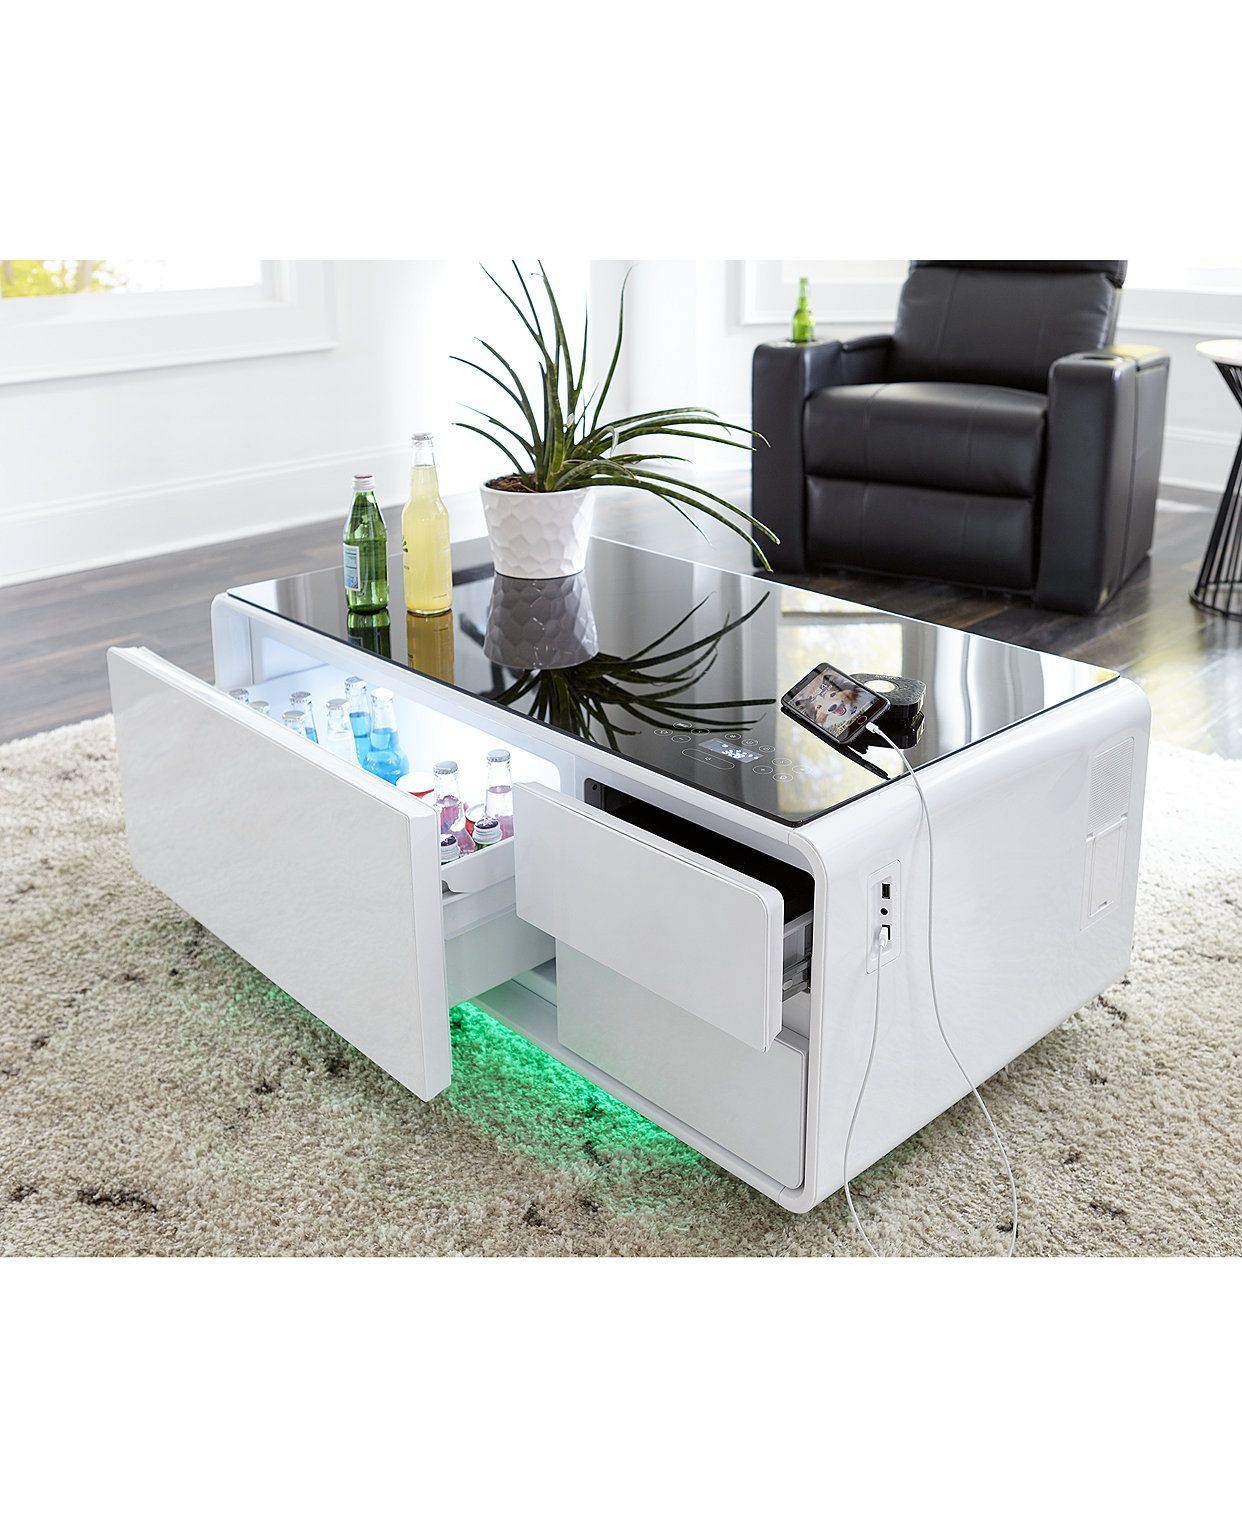 Sobro Smart Storage Coffee Table With Refrigerated Drawer Reviews Furniture Macy S Coffee Table With Storage Coffee Table With Fridge Coffee Table [ 1518 x 1242 Pixel ]